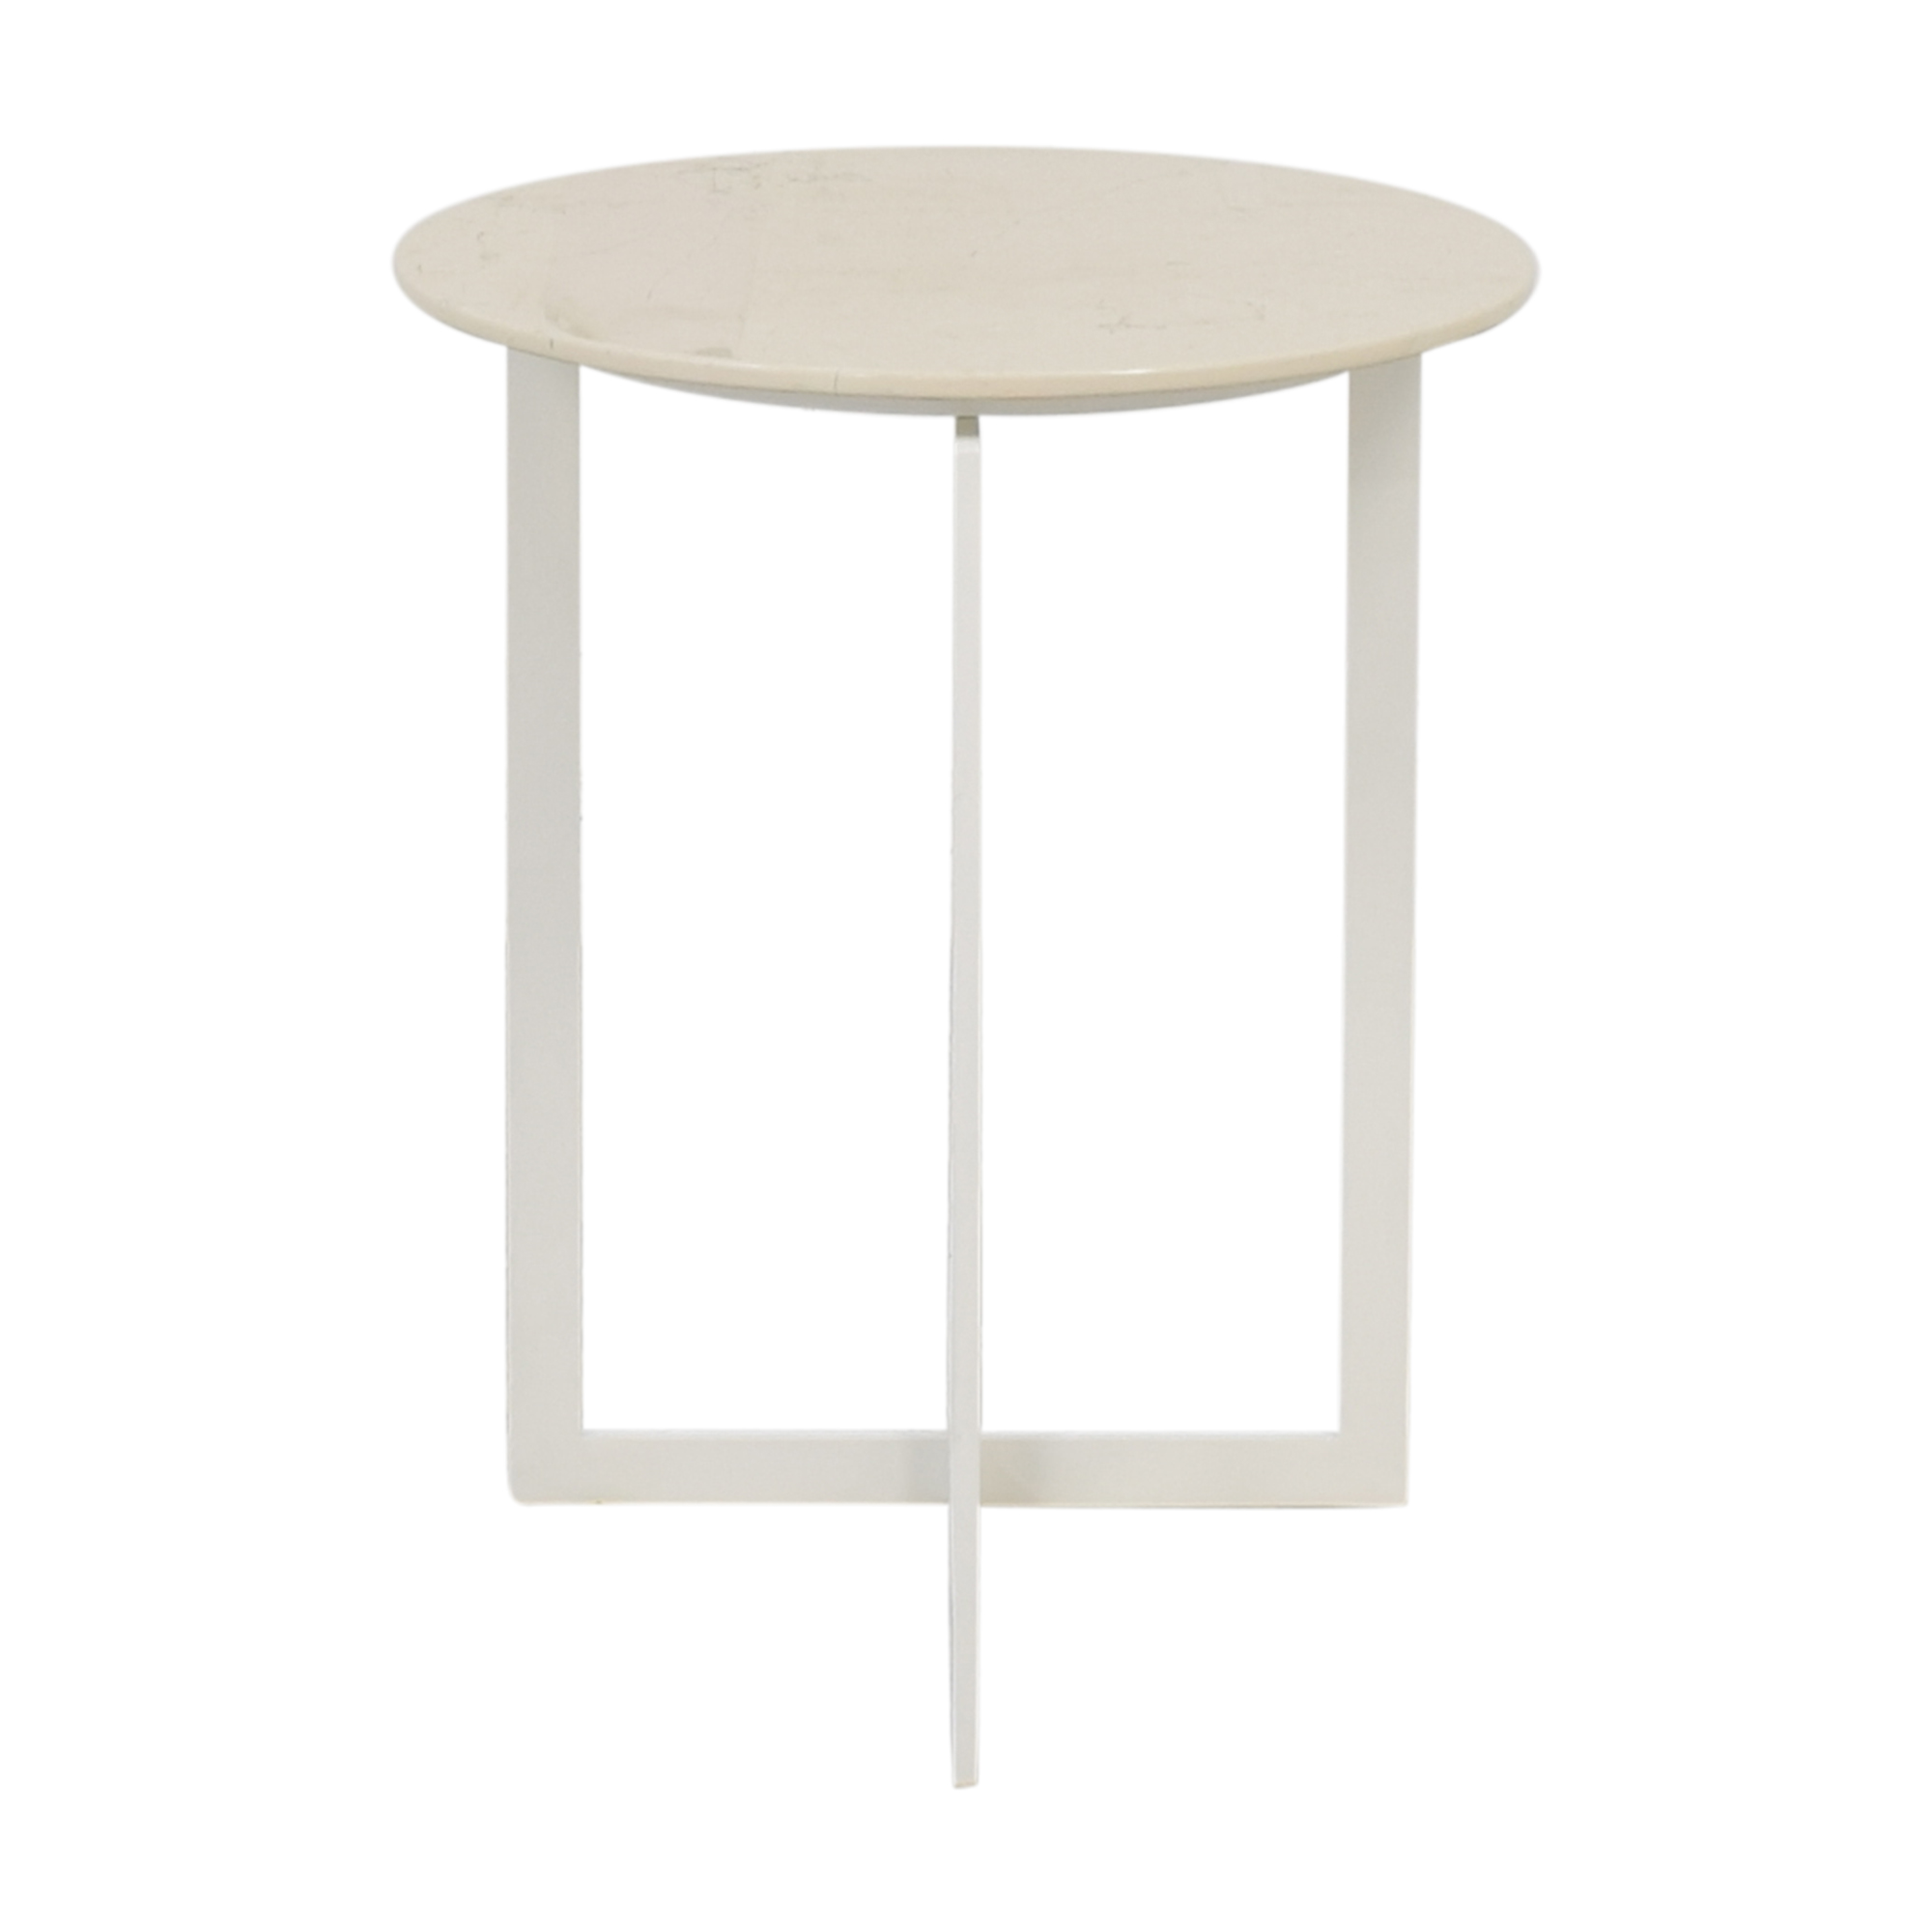 Koleksiyon Terna End Table / Tables